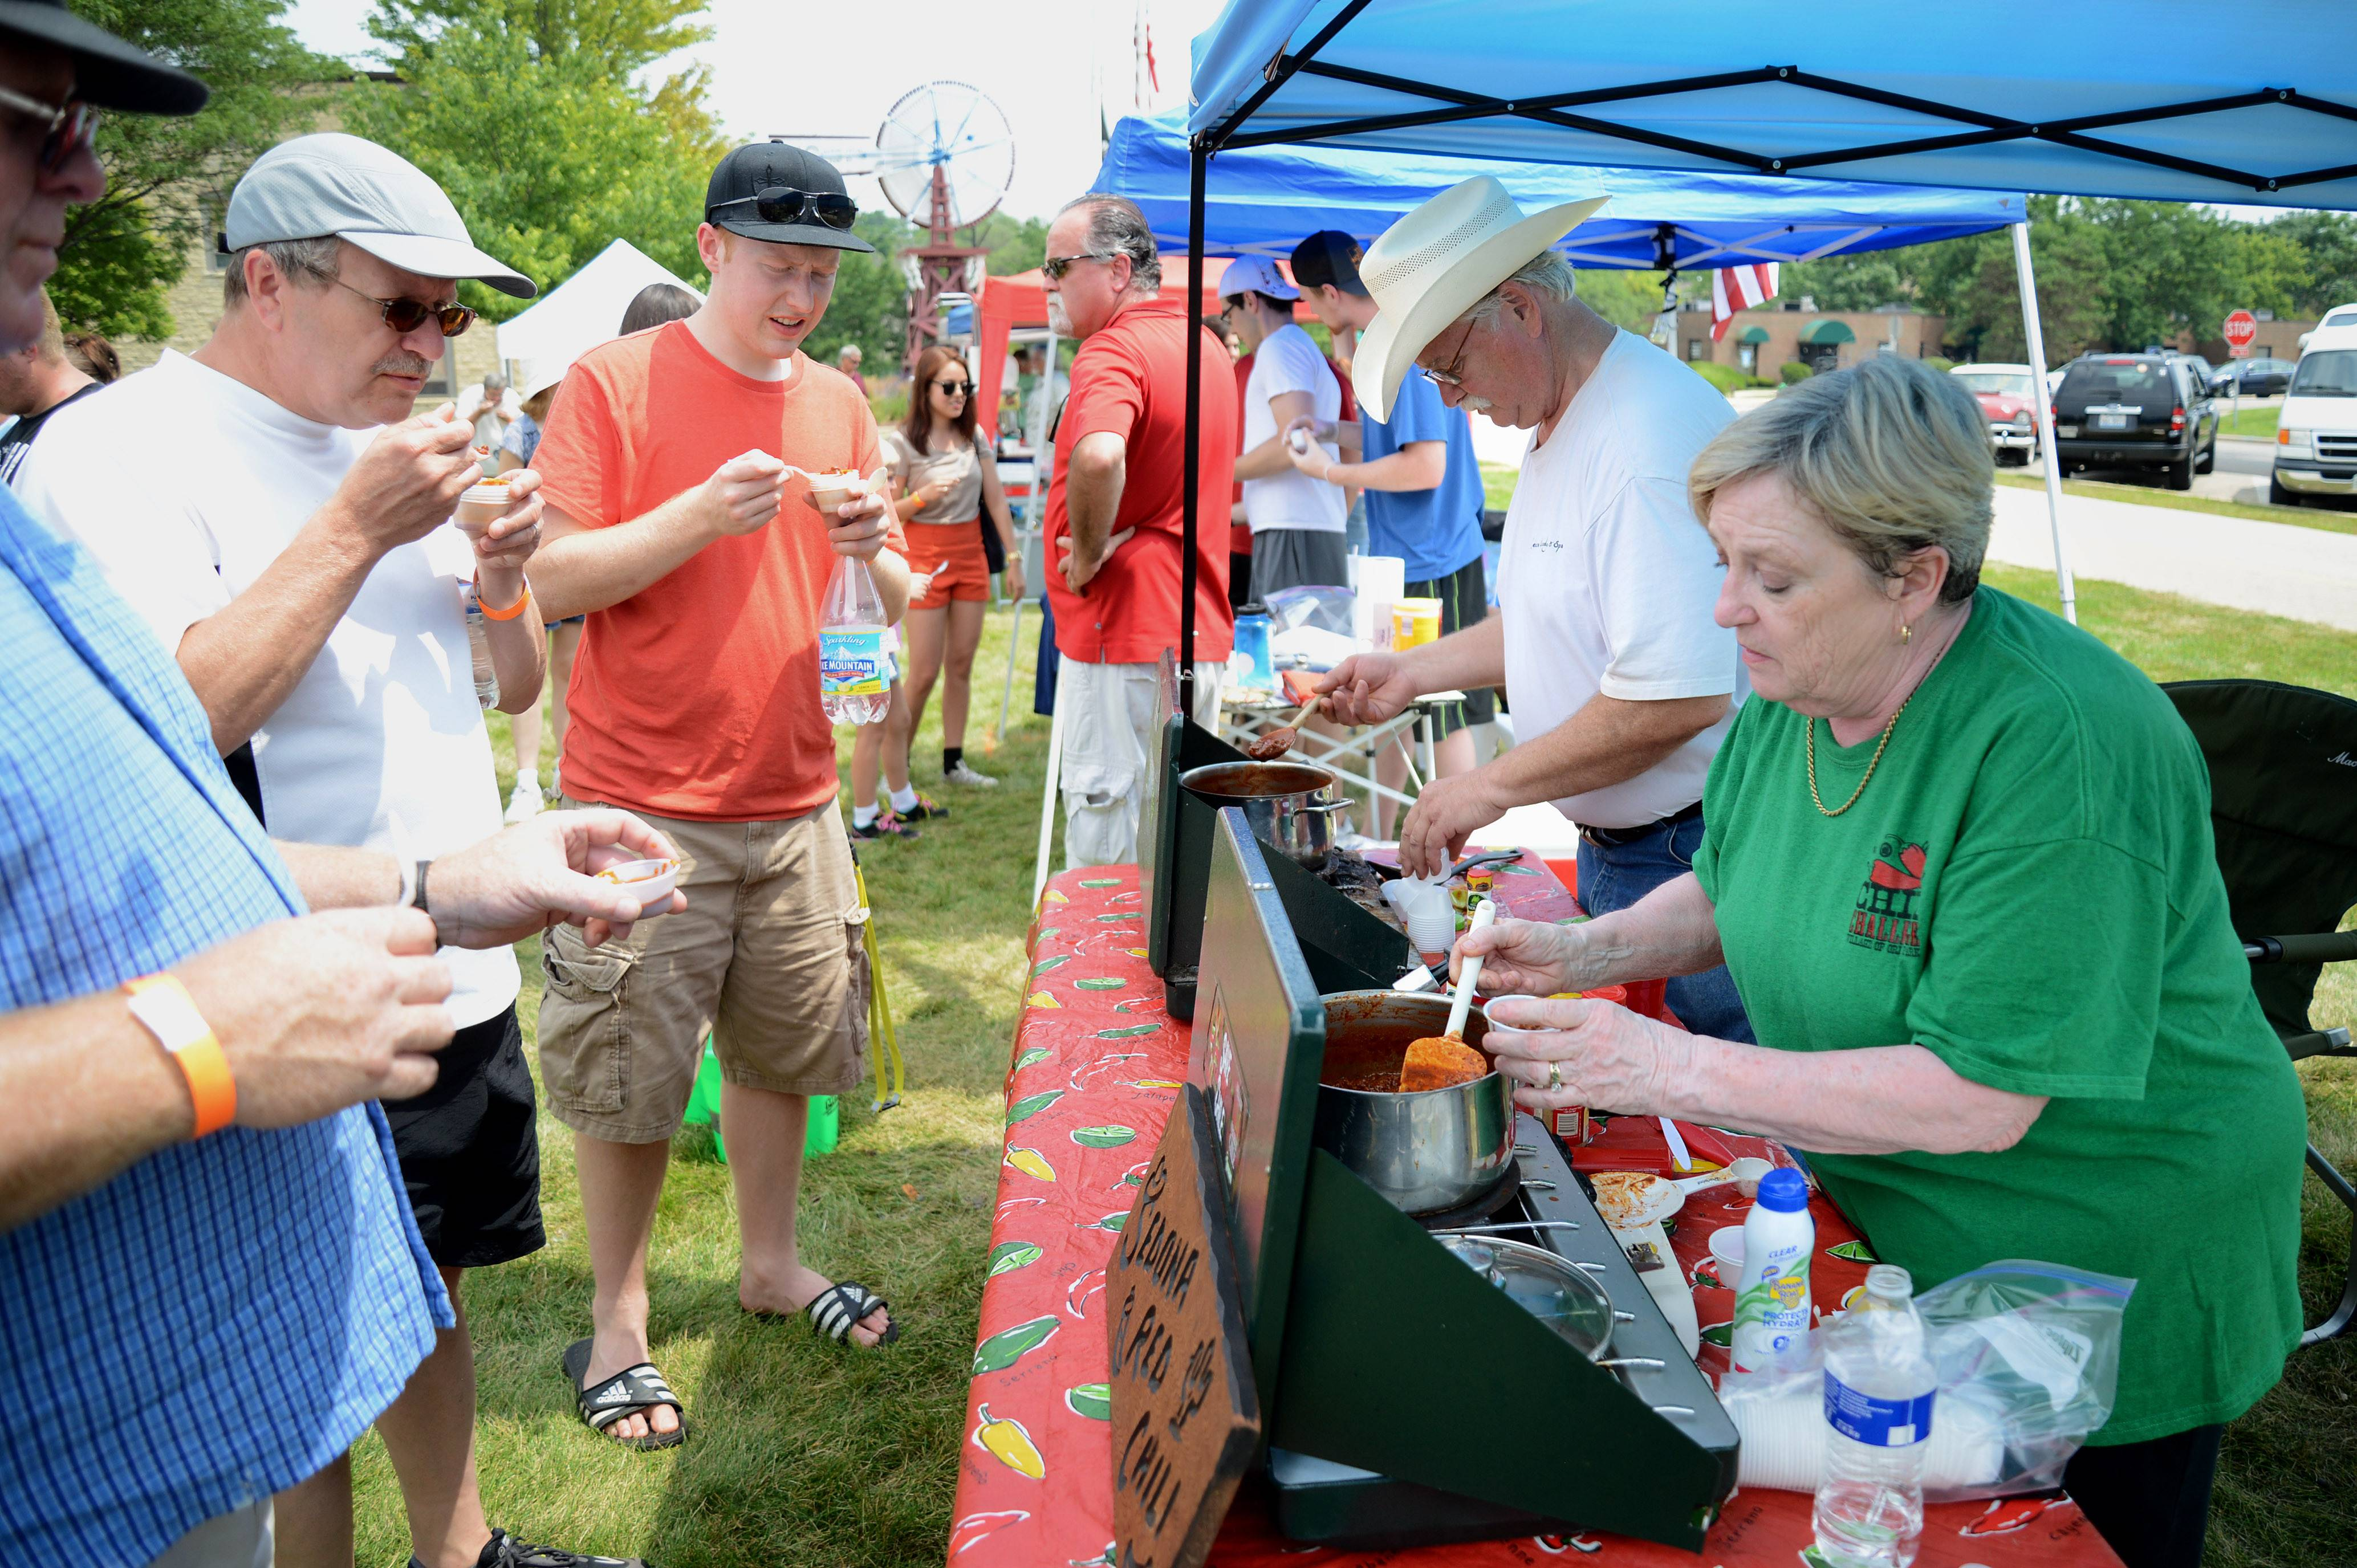 Gloria Stevens of Homer Glen scoops out samples of her Sedona Red Chili to hungry patrons at the State Championship Chili Cook-Off Saturday in Batavia. Her husband, Mike, right, has competed since the beginning, while Gloria started a few years later.